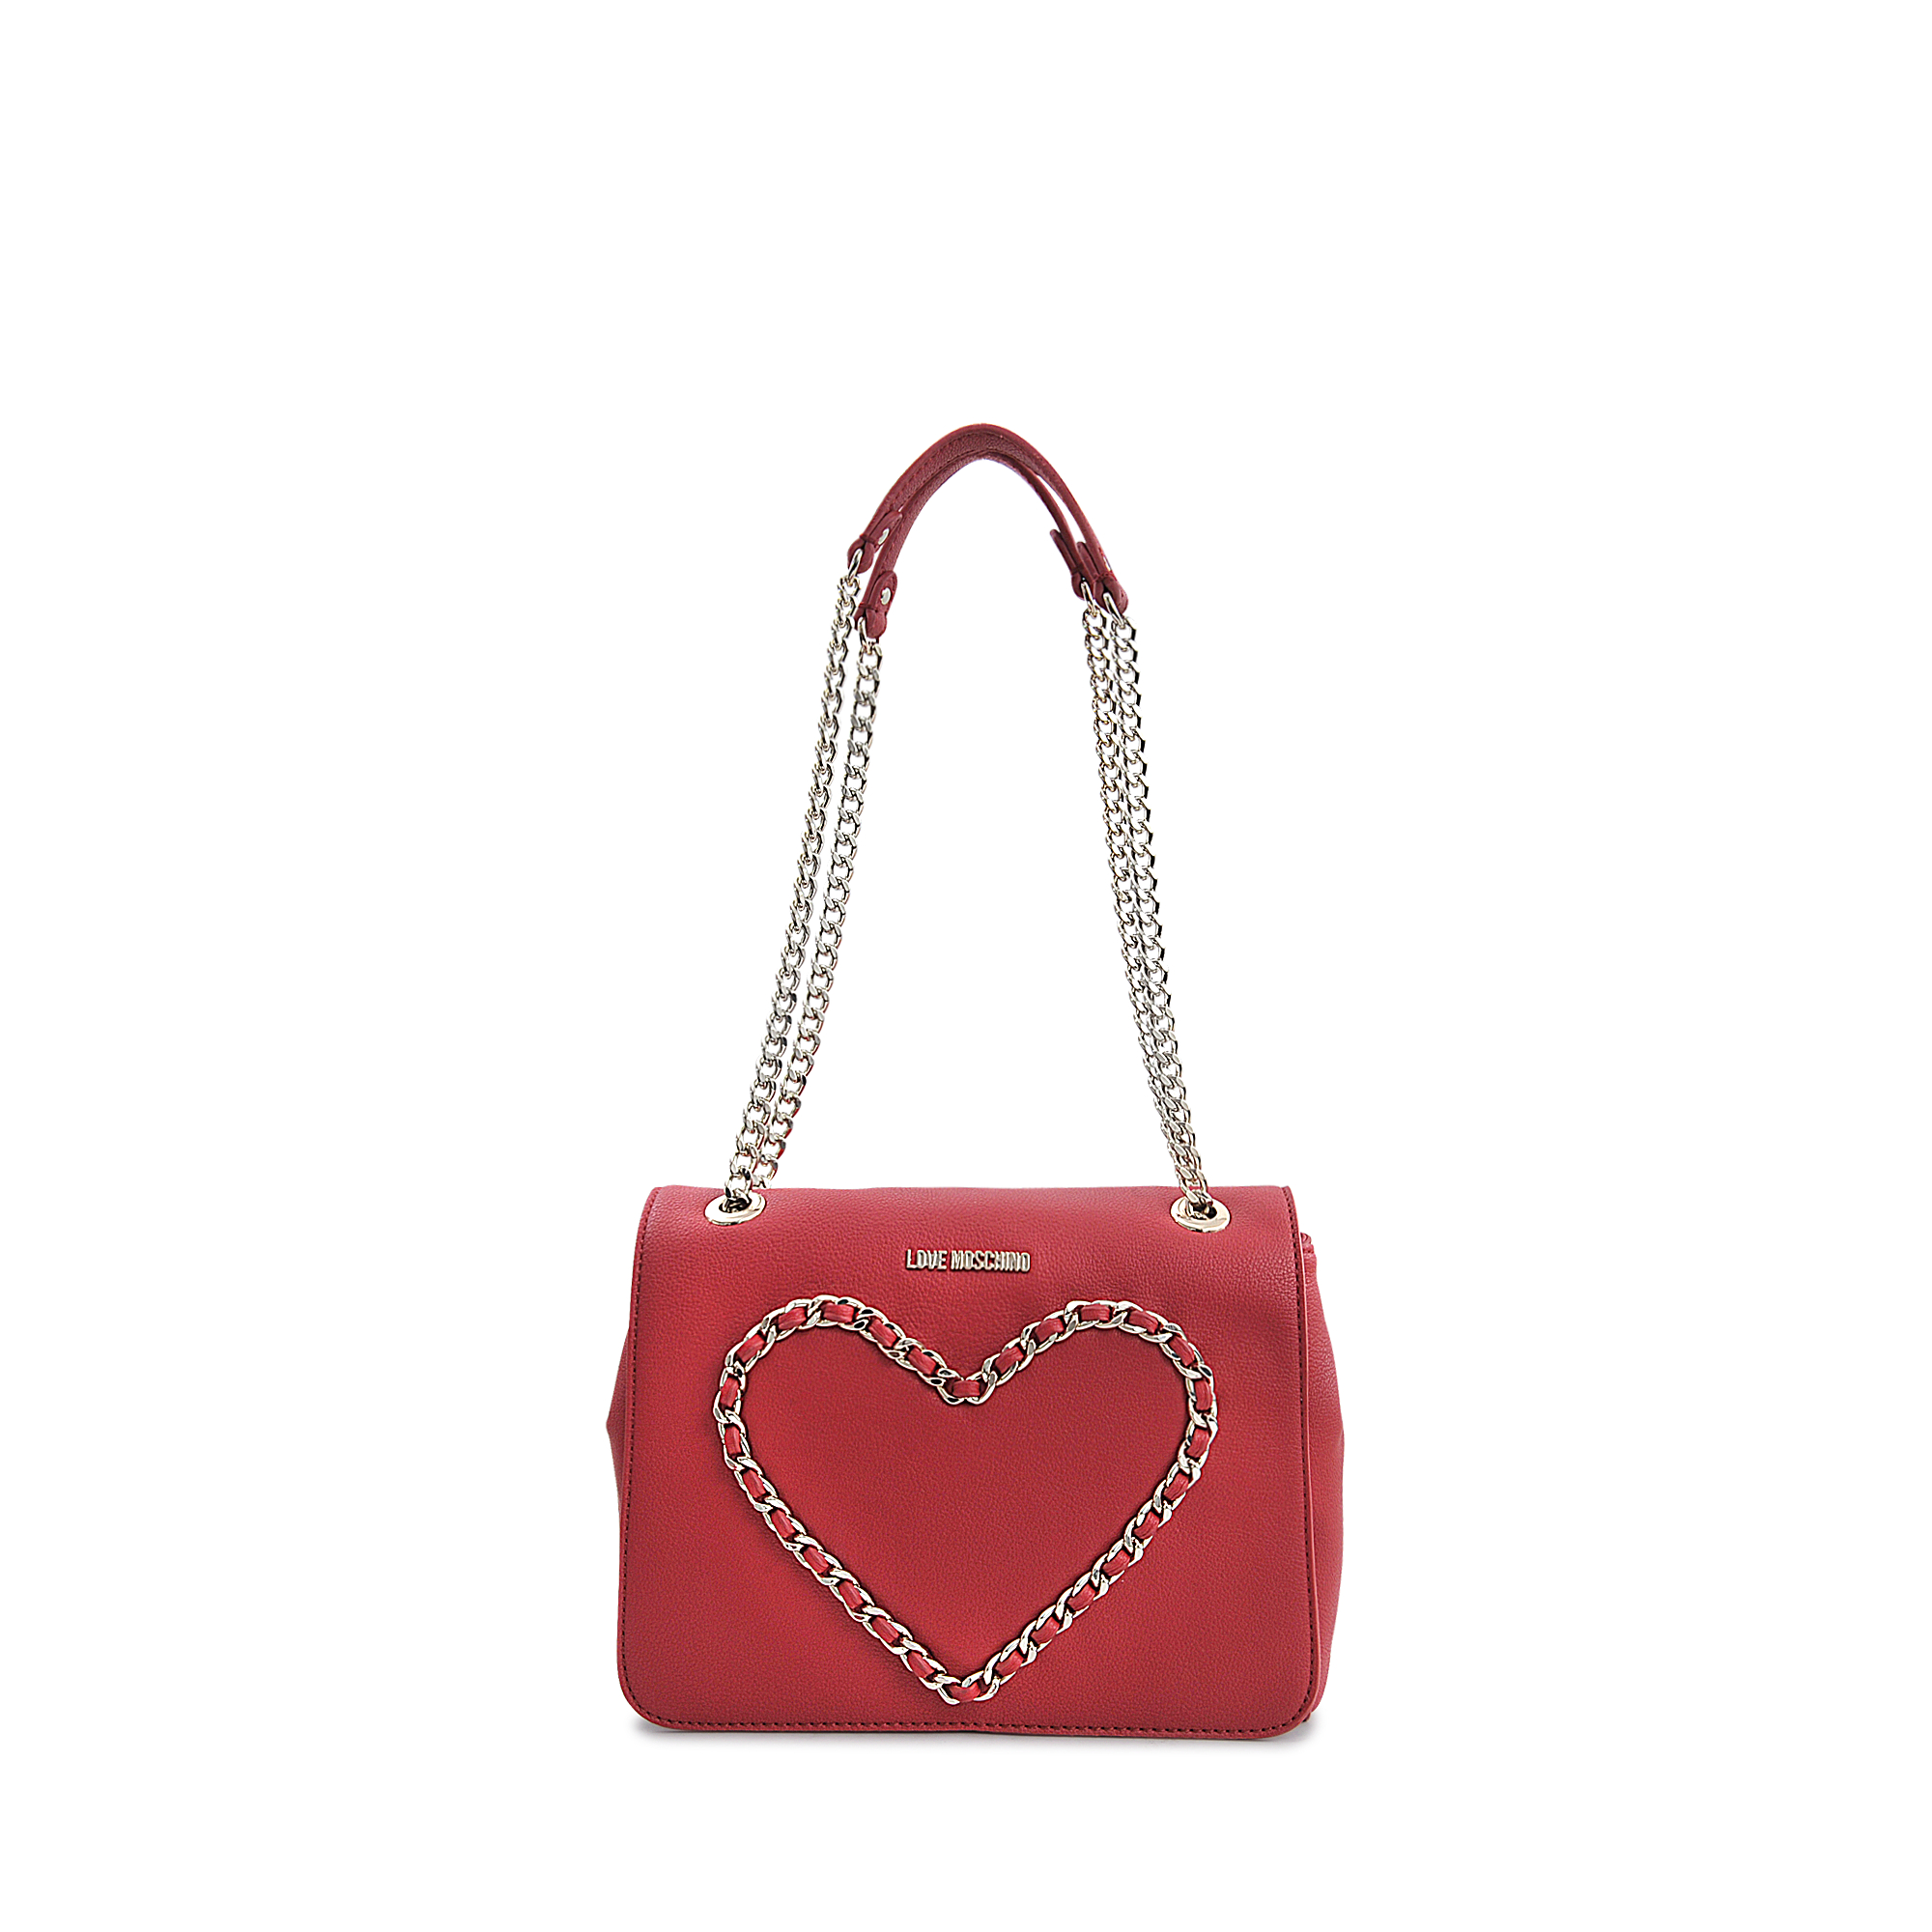 4051a59fcd3 Love Moschino Chain Heart Flap Bag in Red - Lyst